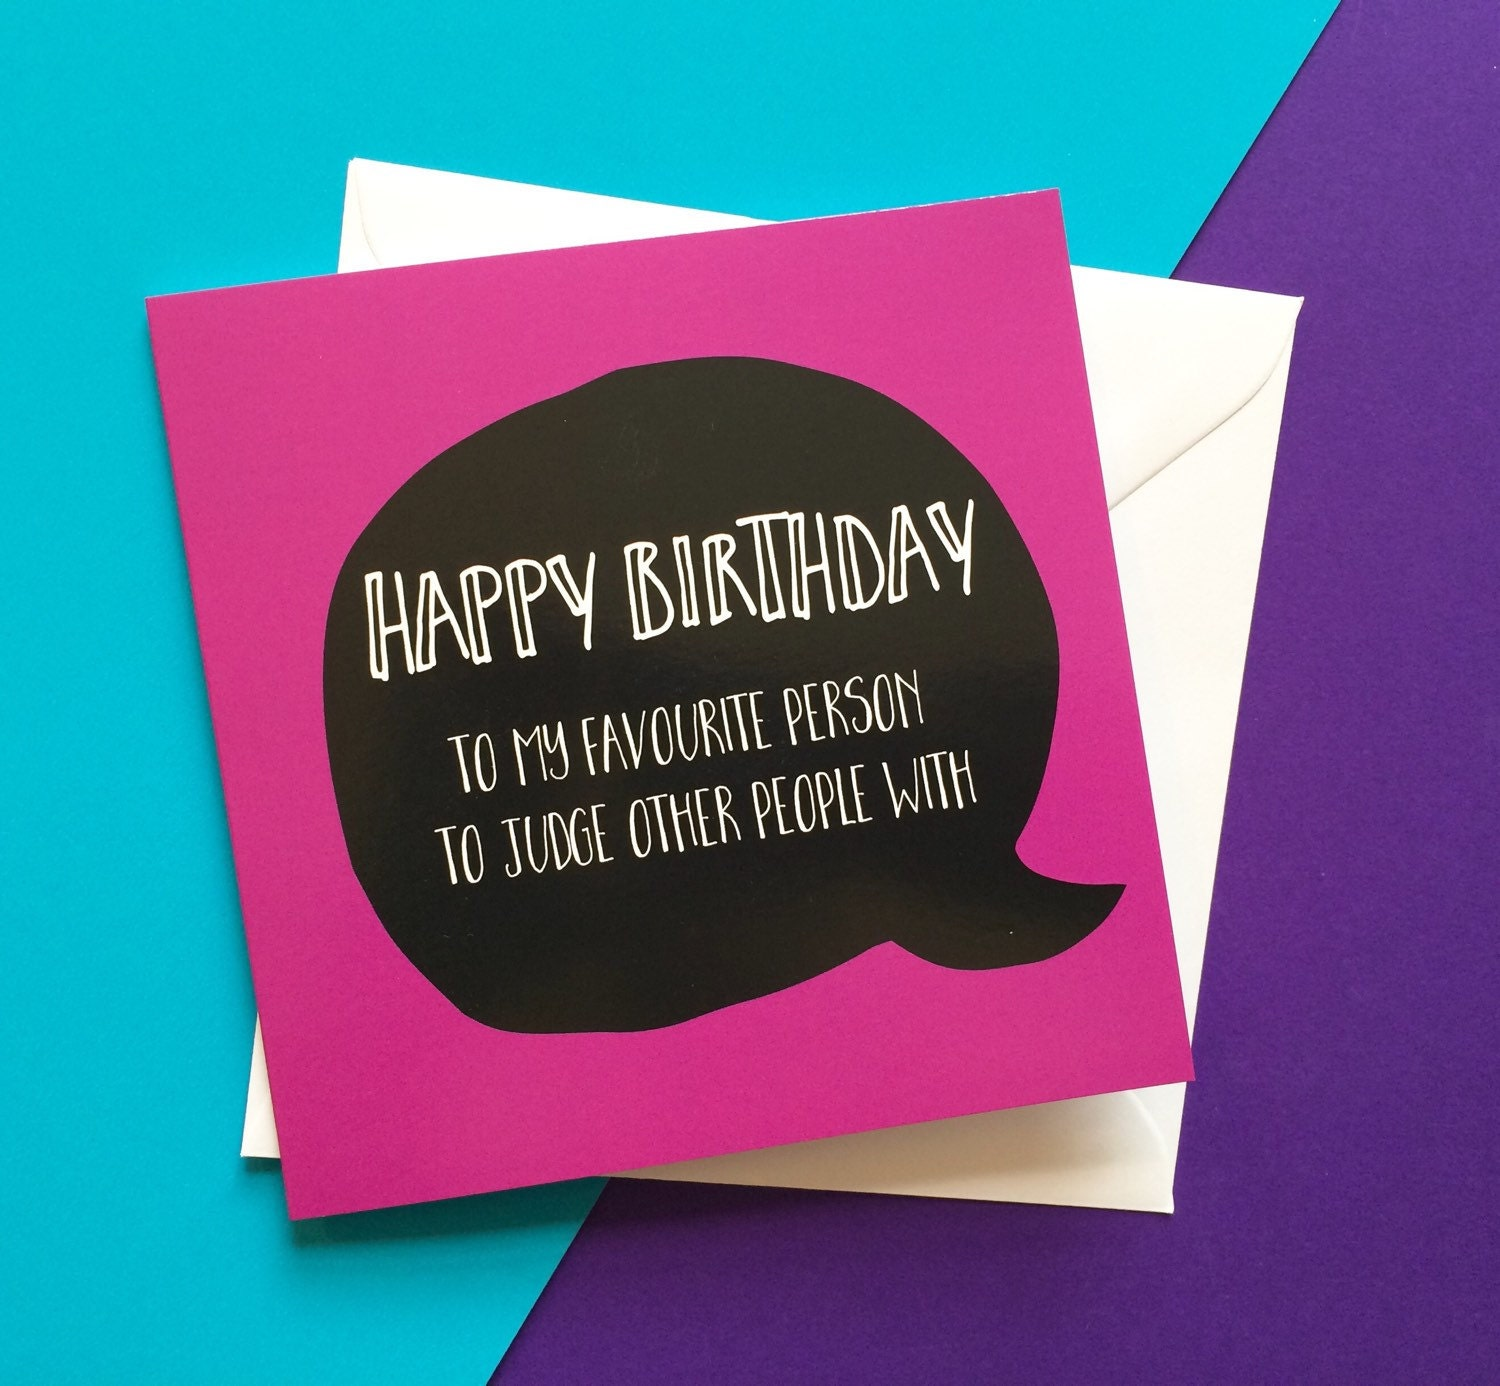 Best Friend Birthday Card Judge People Birthday Card For Her